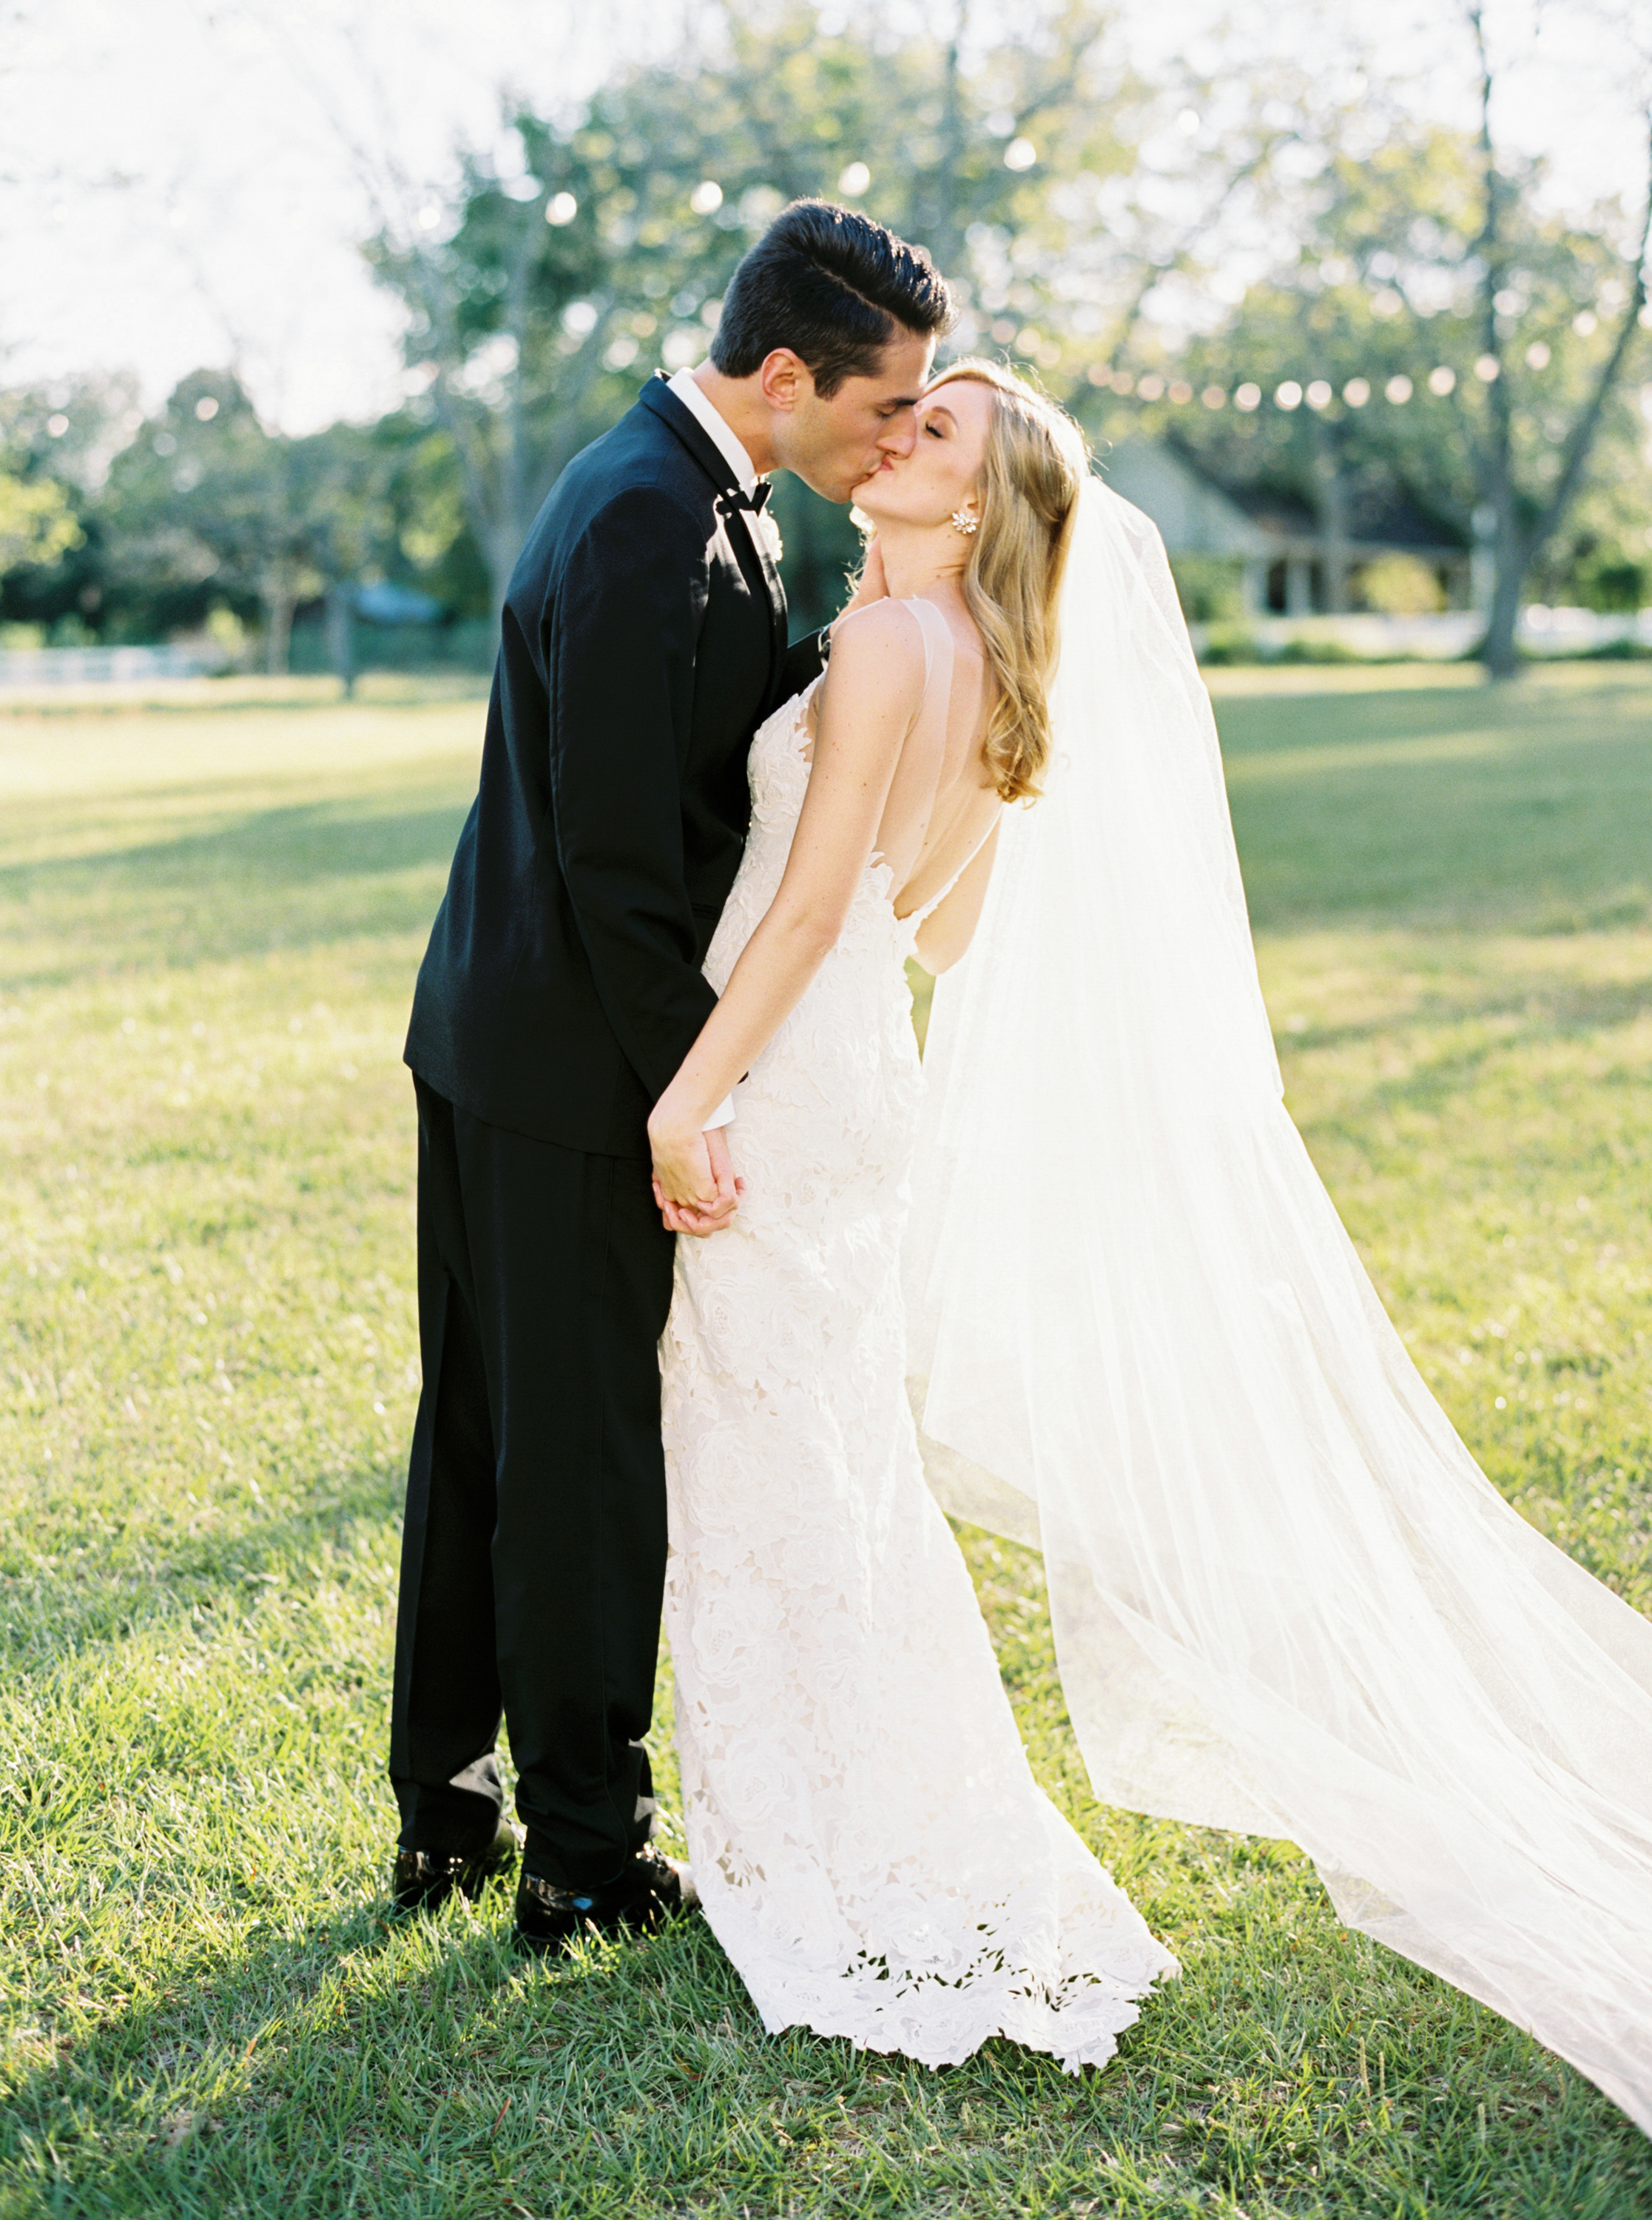 Laura & Connor   Featured on Style Me Pretty & Brides of Houston